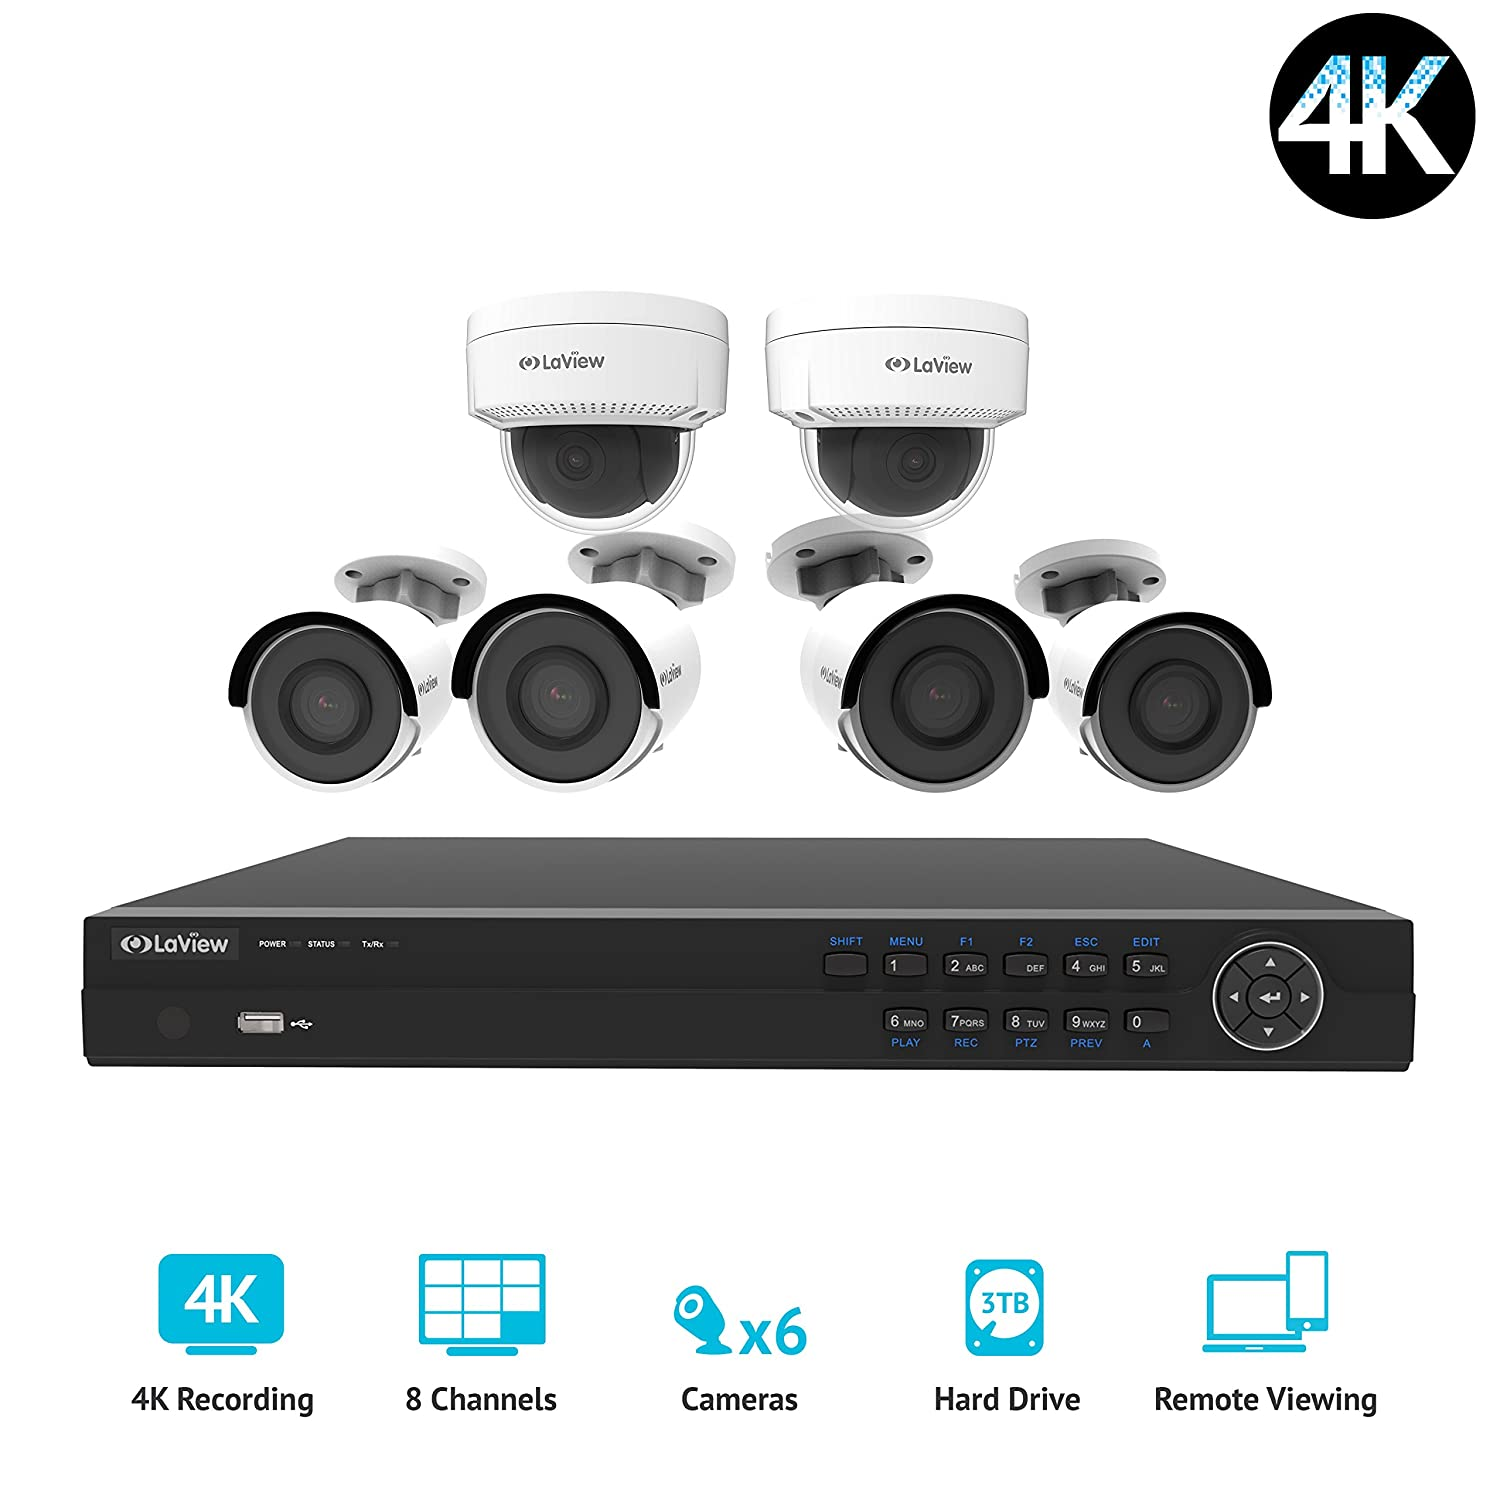 LaView LV-KNG968E86G8D8-T3 HD 8 Channel 4K Business Home NVR Security System W 4 Indoor Outdoor Bullet 2 Indoor Outdoor Dome IP POE Surveillance Cameras HD 100ft Night Vision 2TB HDD, 2 TB 4K